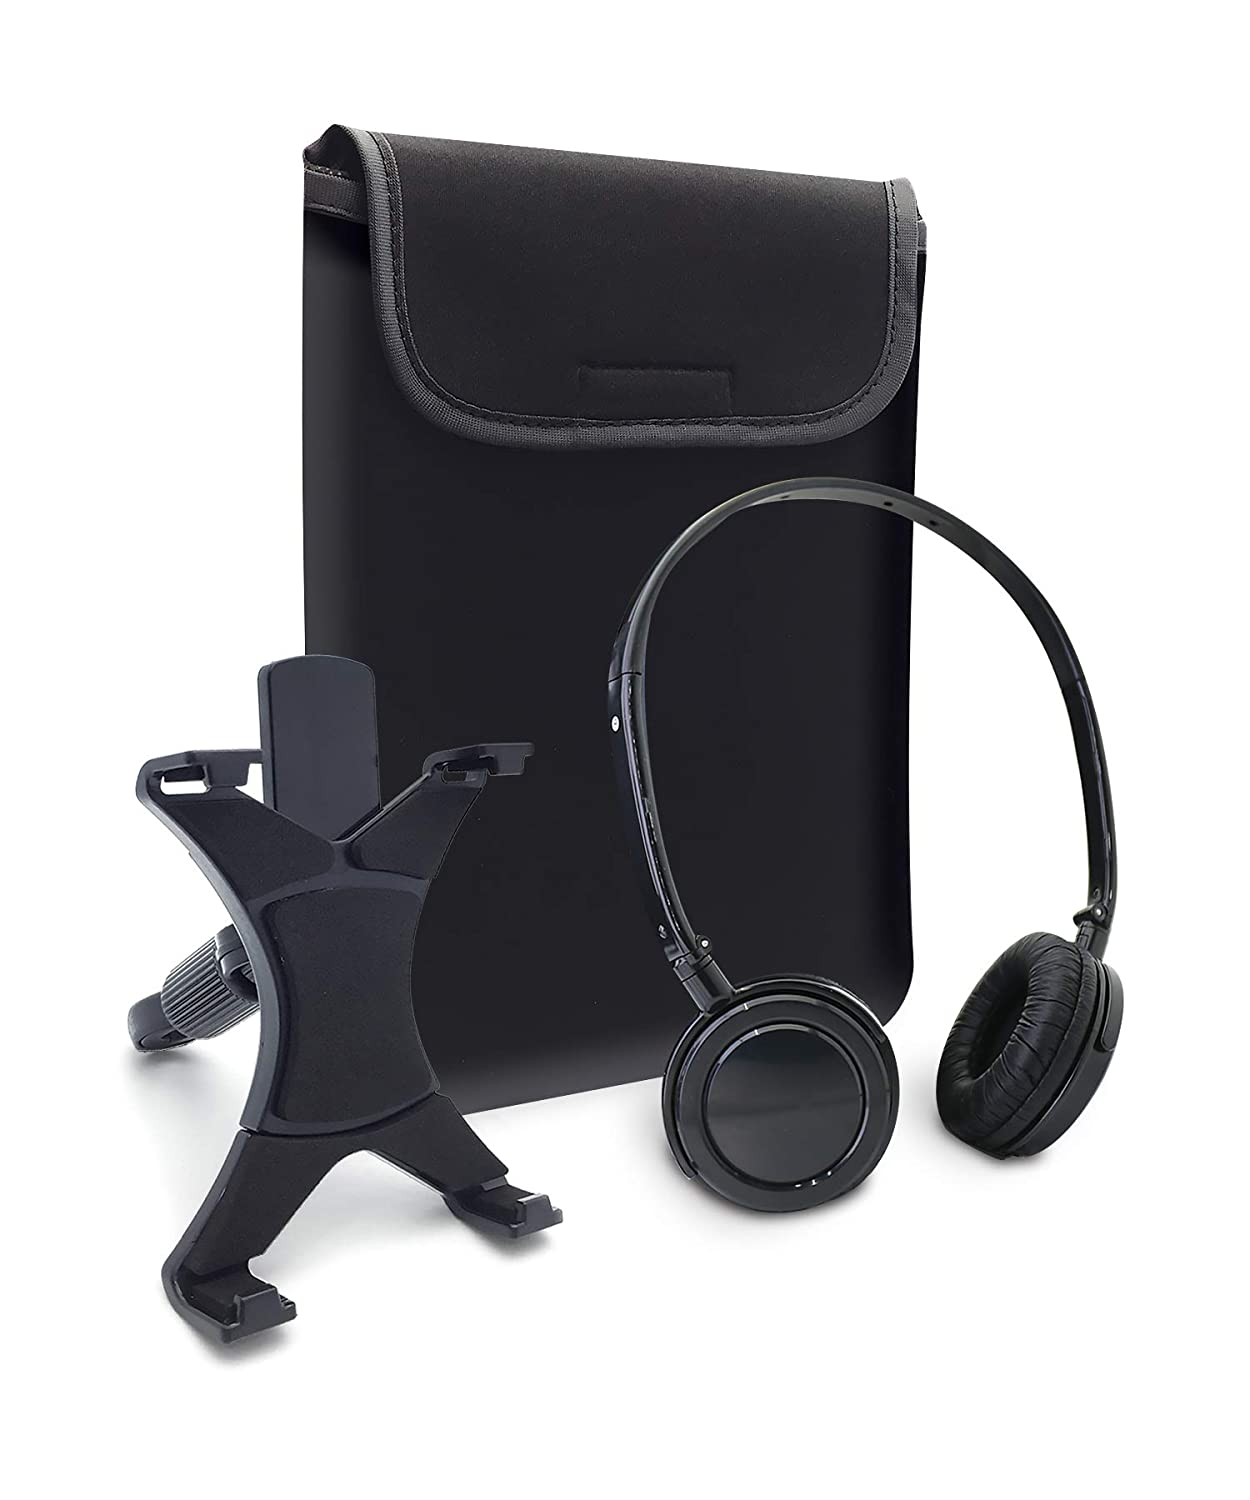 Headphones, Sleeve, and Car Headrest Mount ACC1801 Tablet Accessory Travel Kit - Caseworks